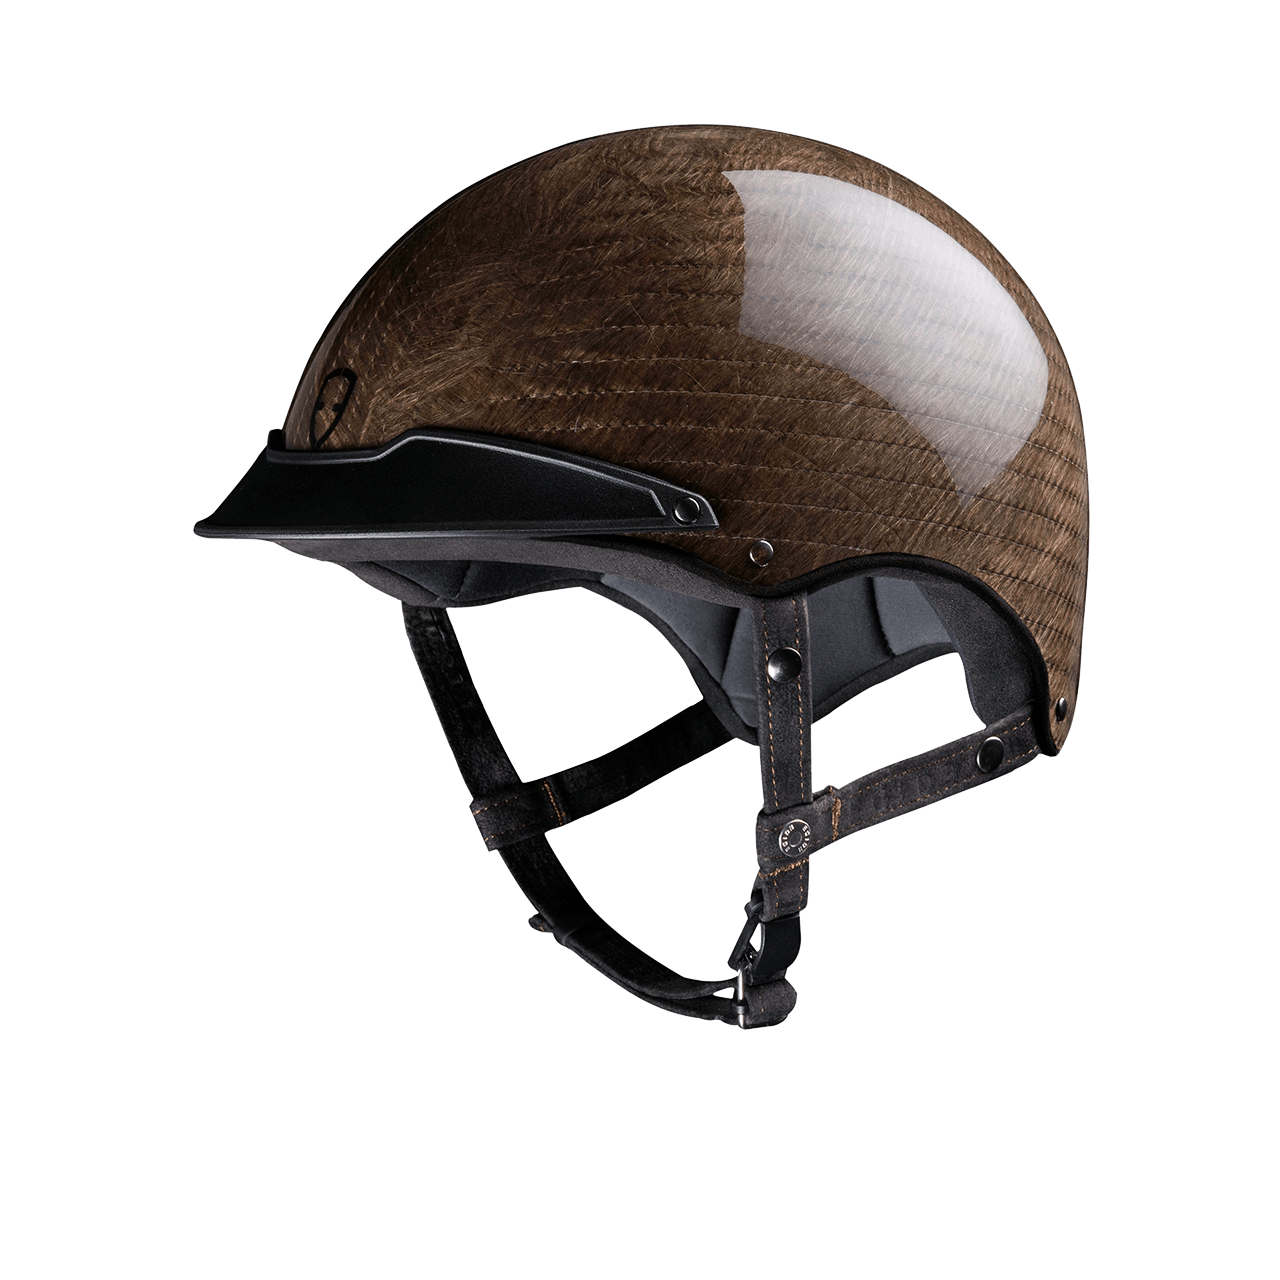 Egide Paris Apollo Helm aus Leinen